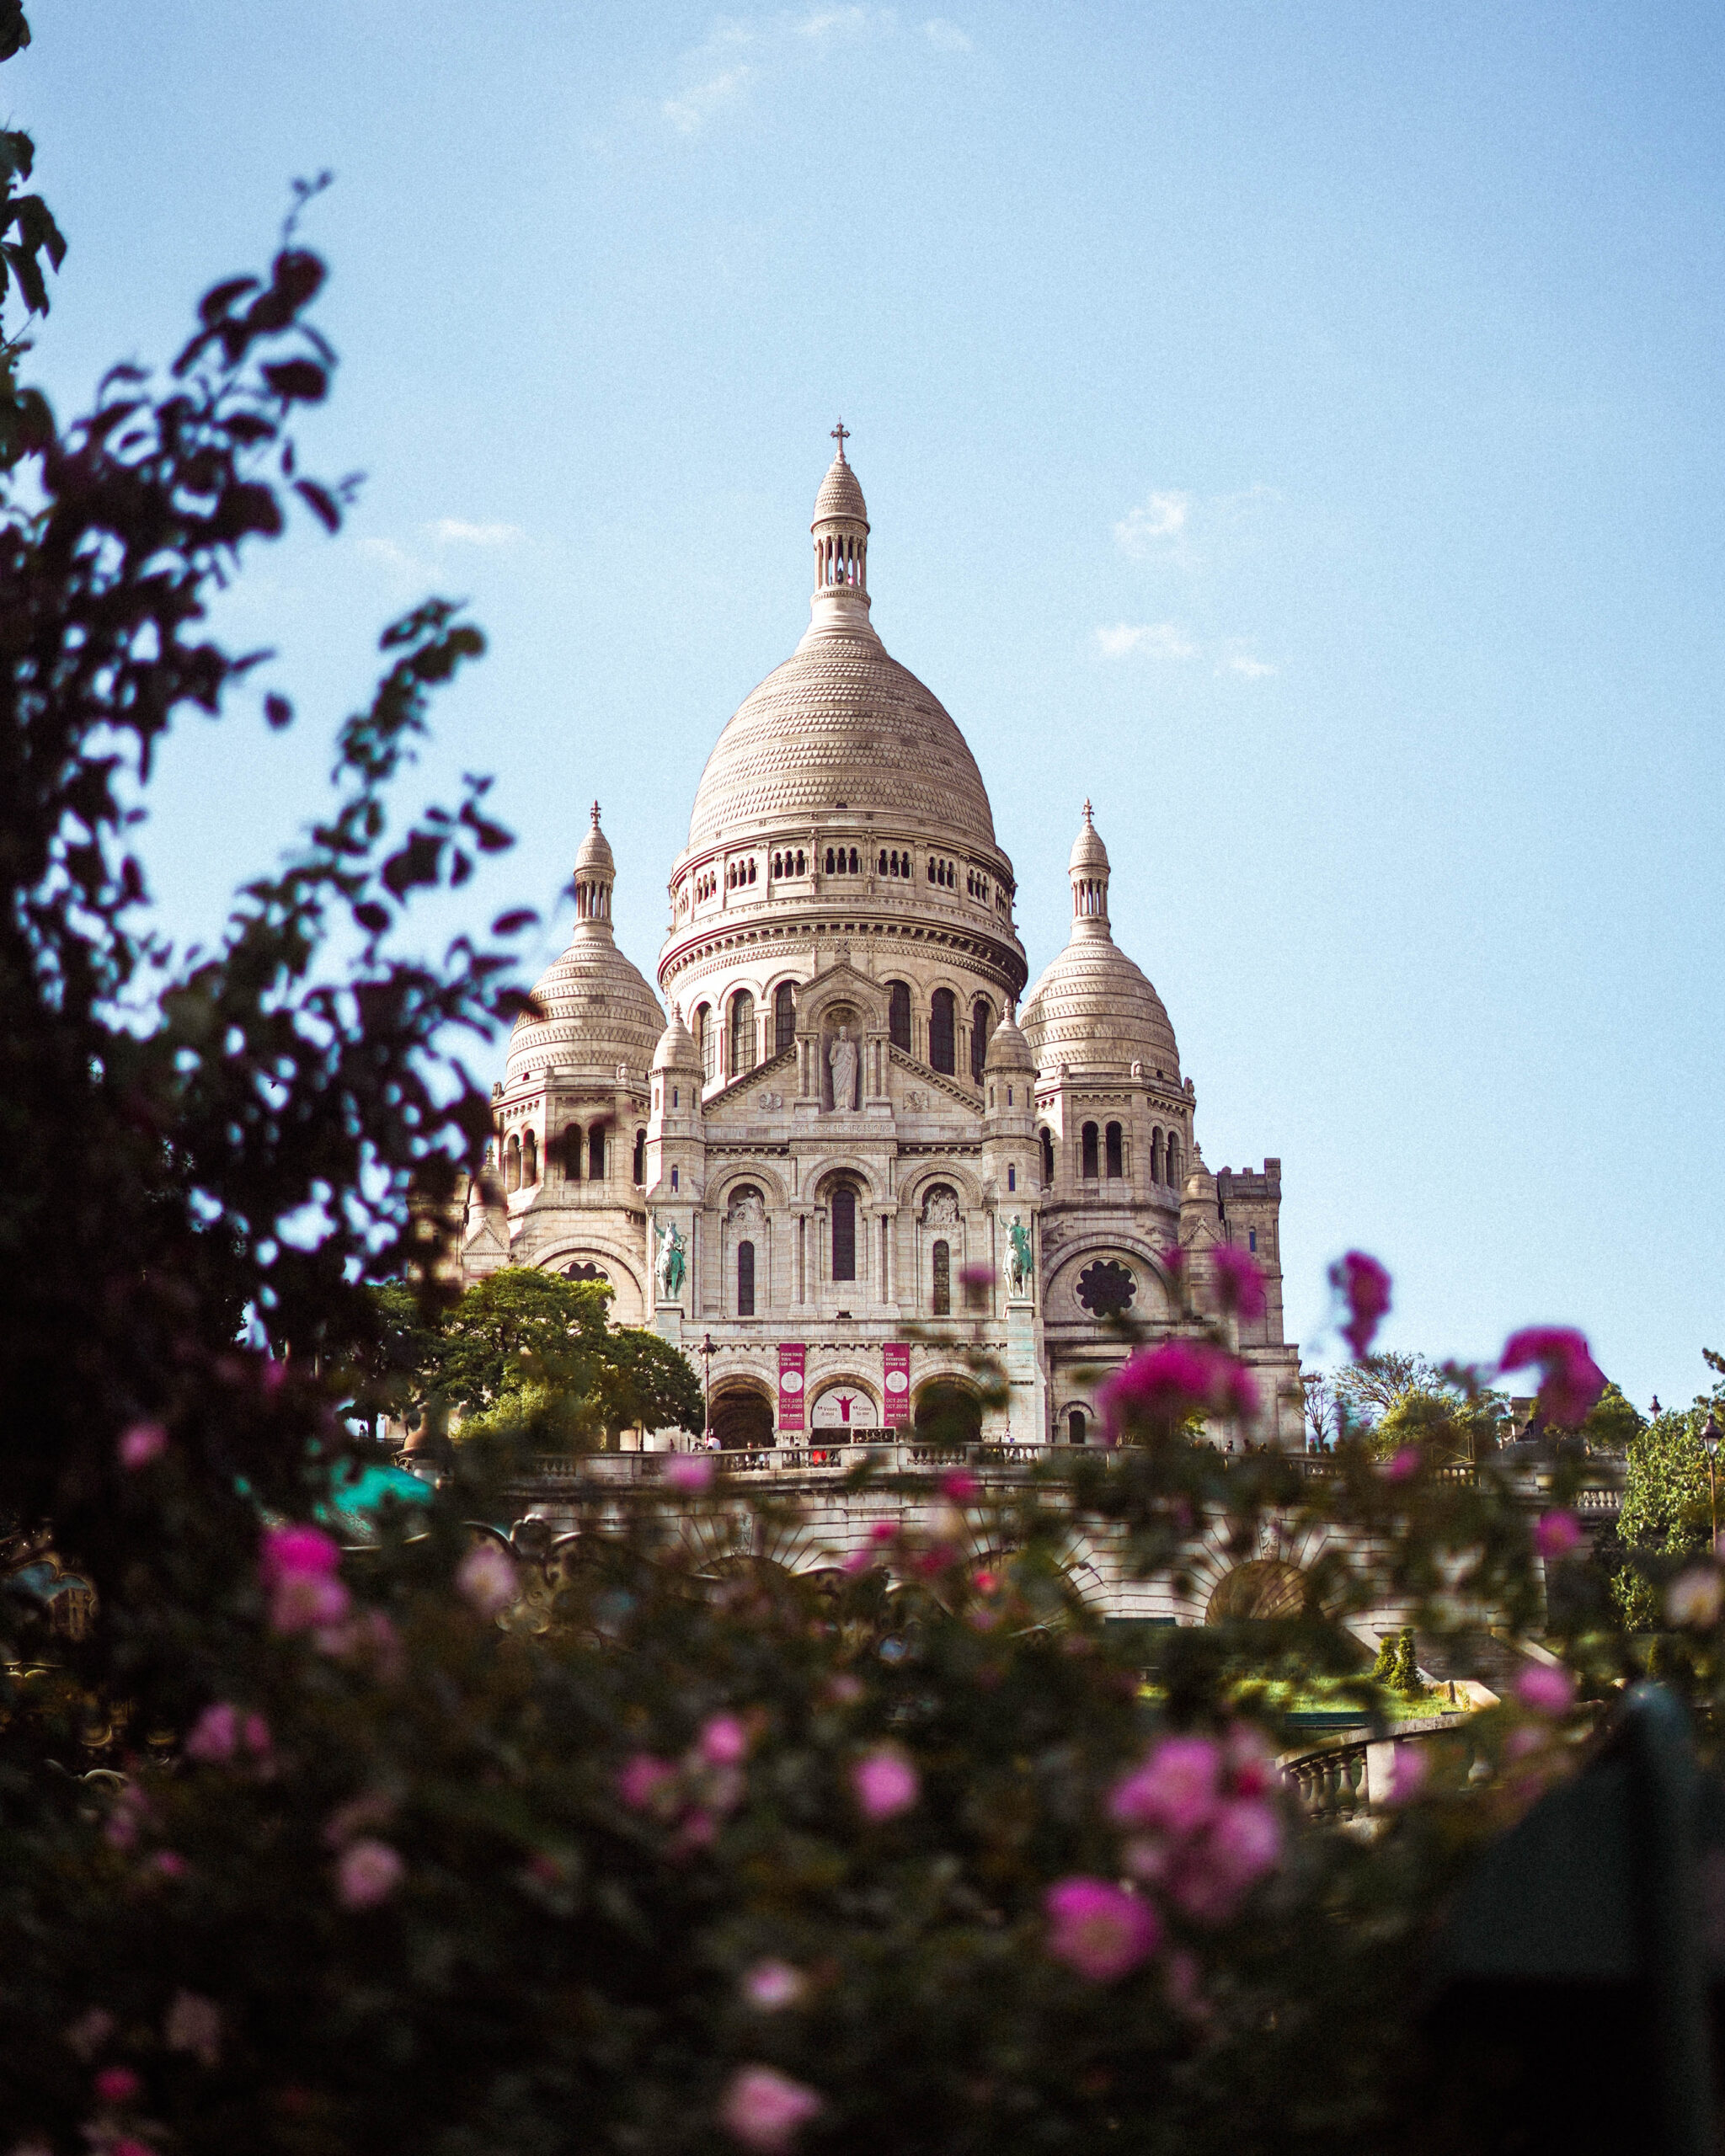 Post Confinement France: Life After Lockdown in Paris